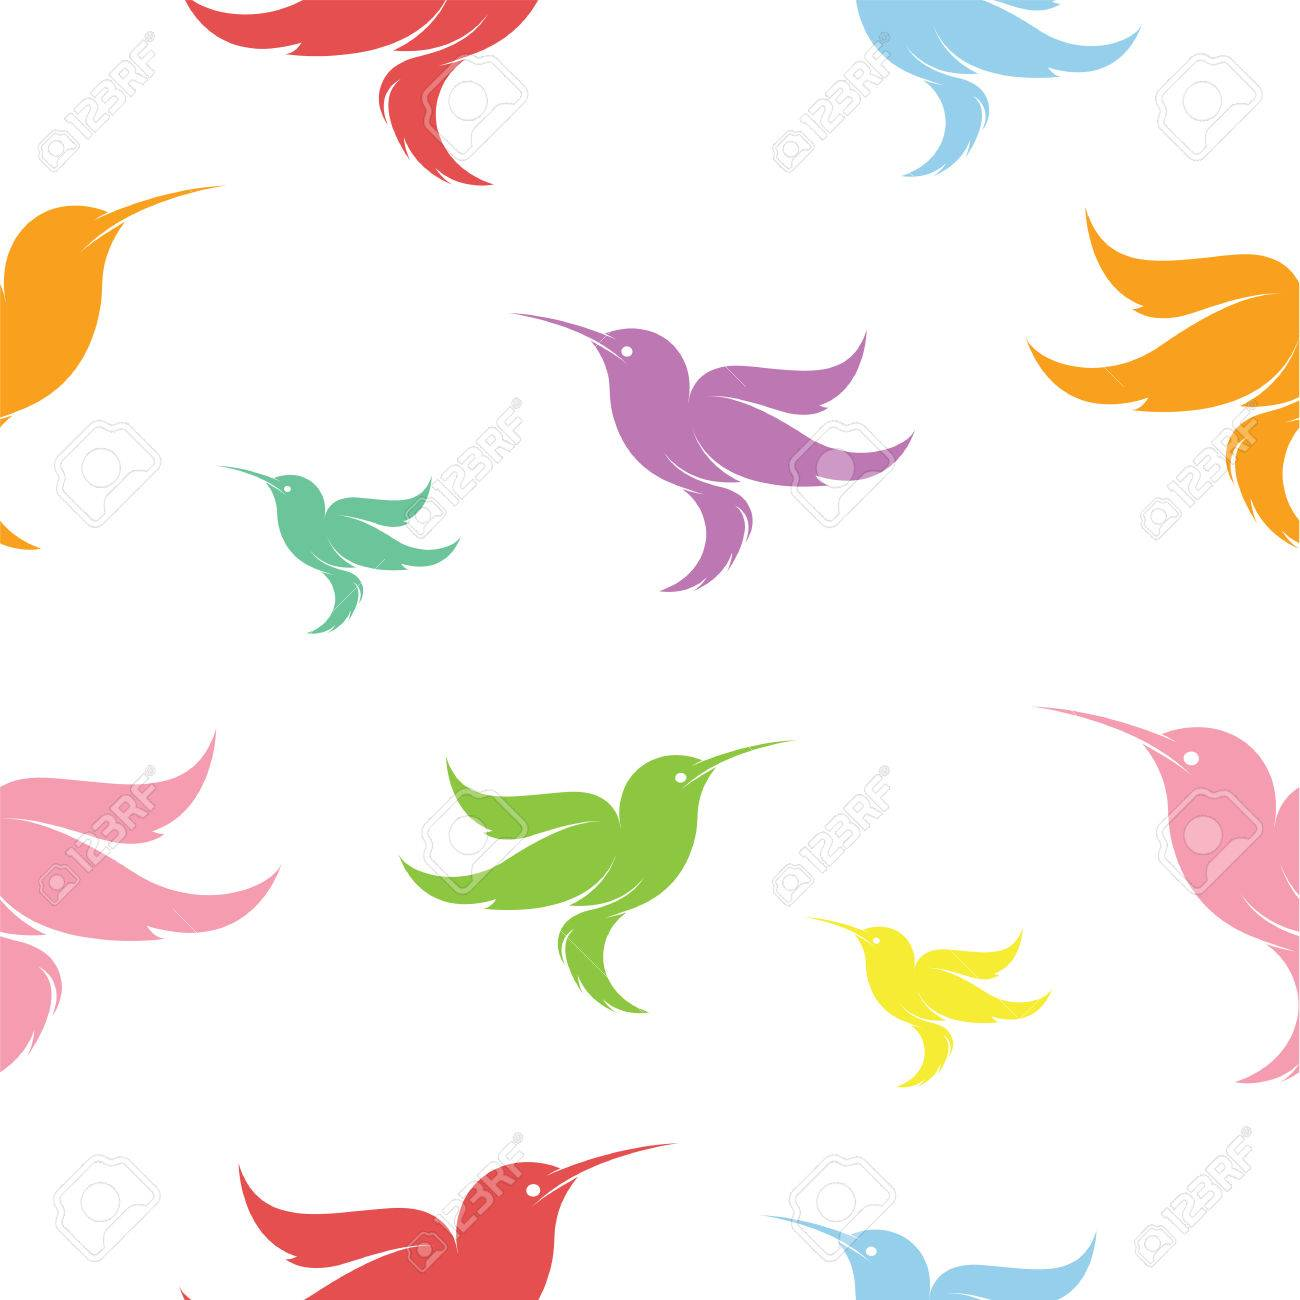 hummingbird vector art background design for fabric and decor